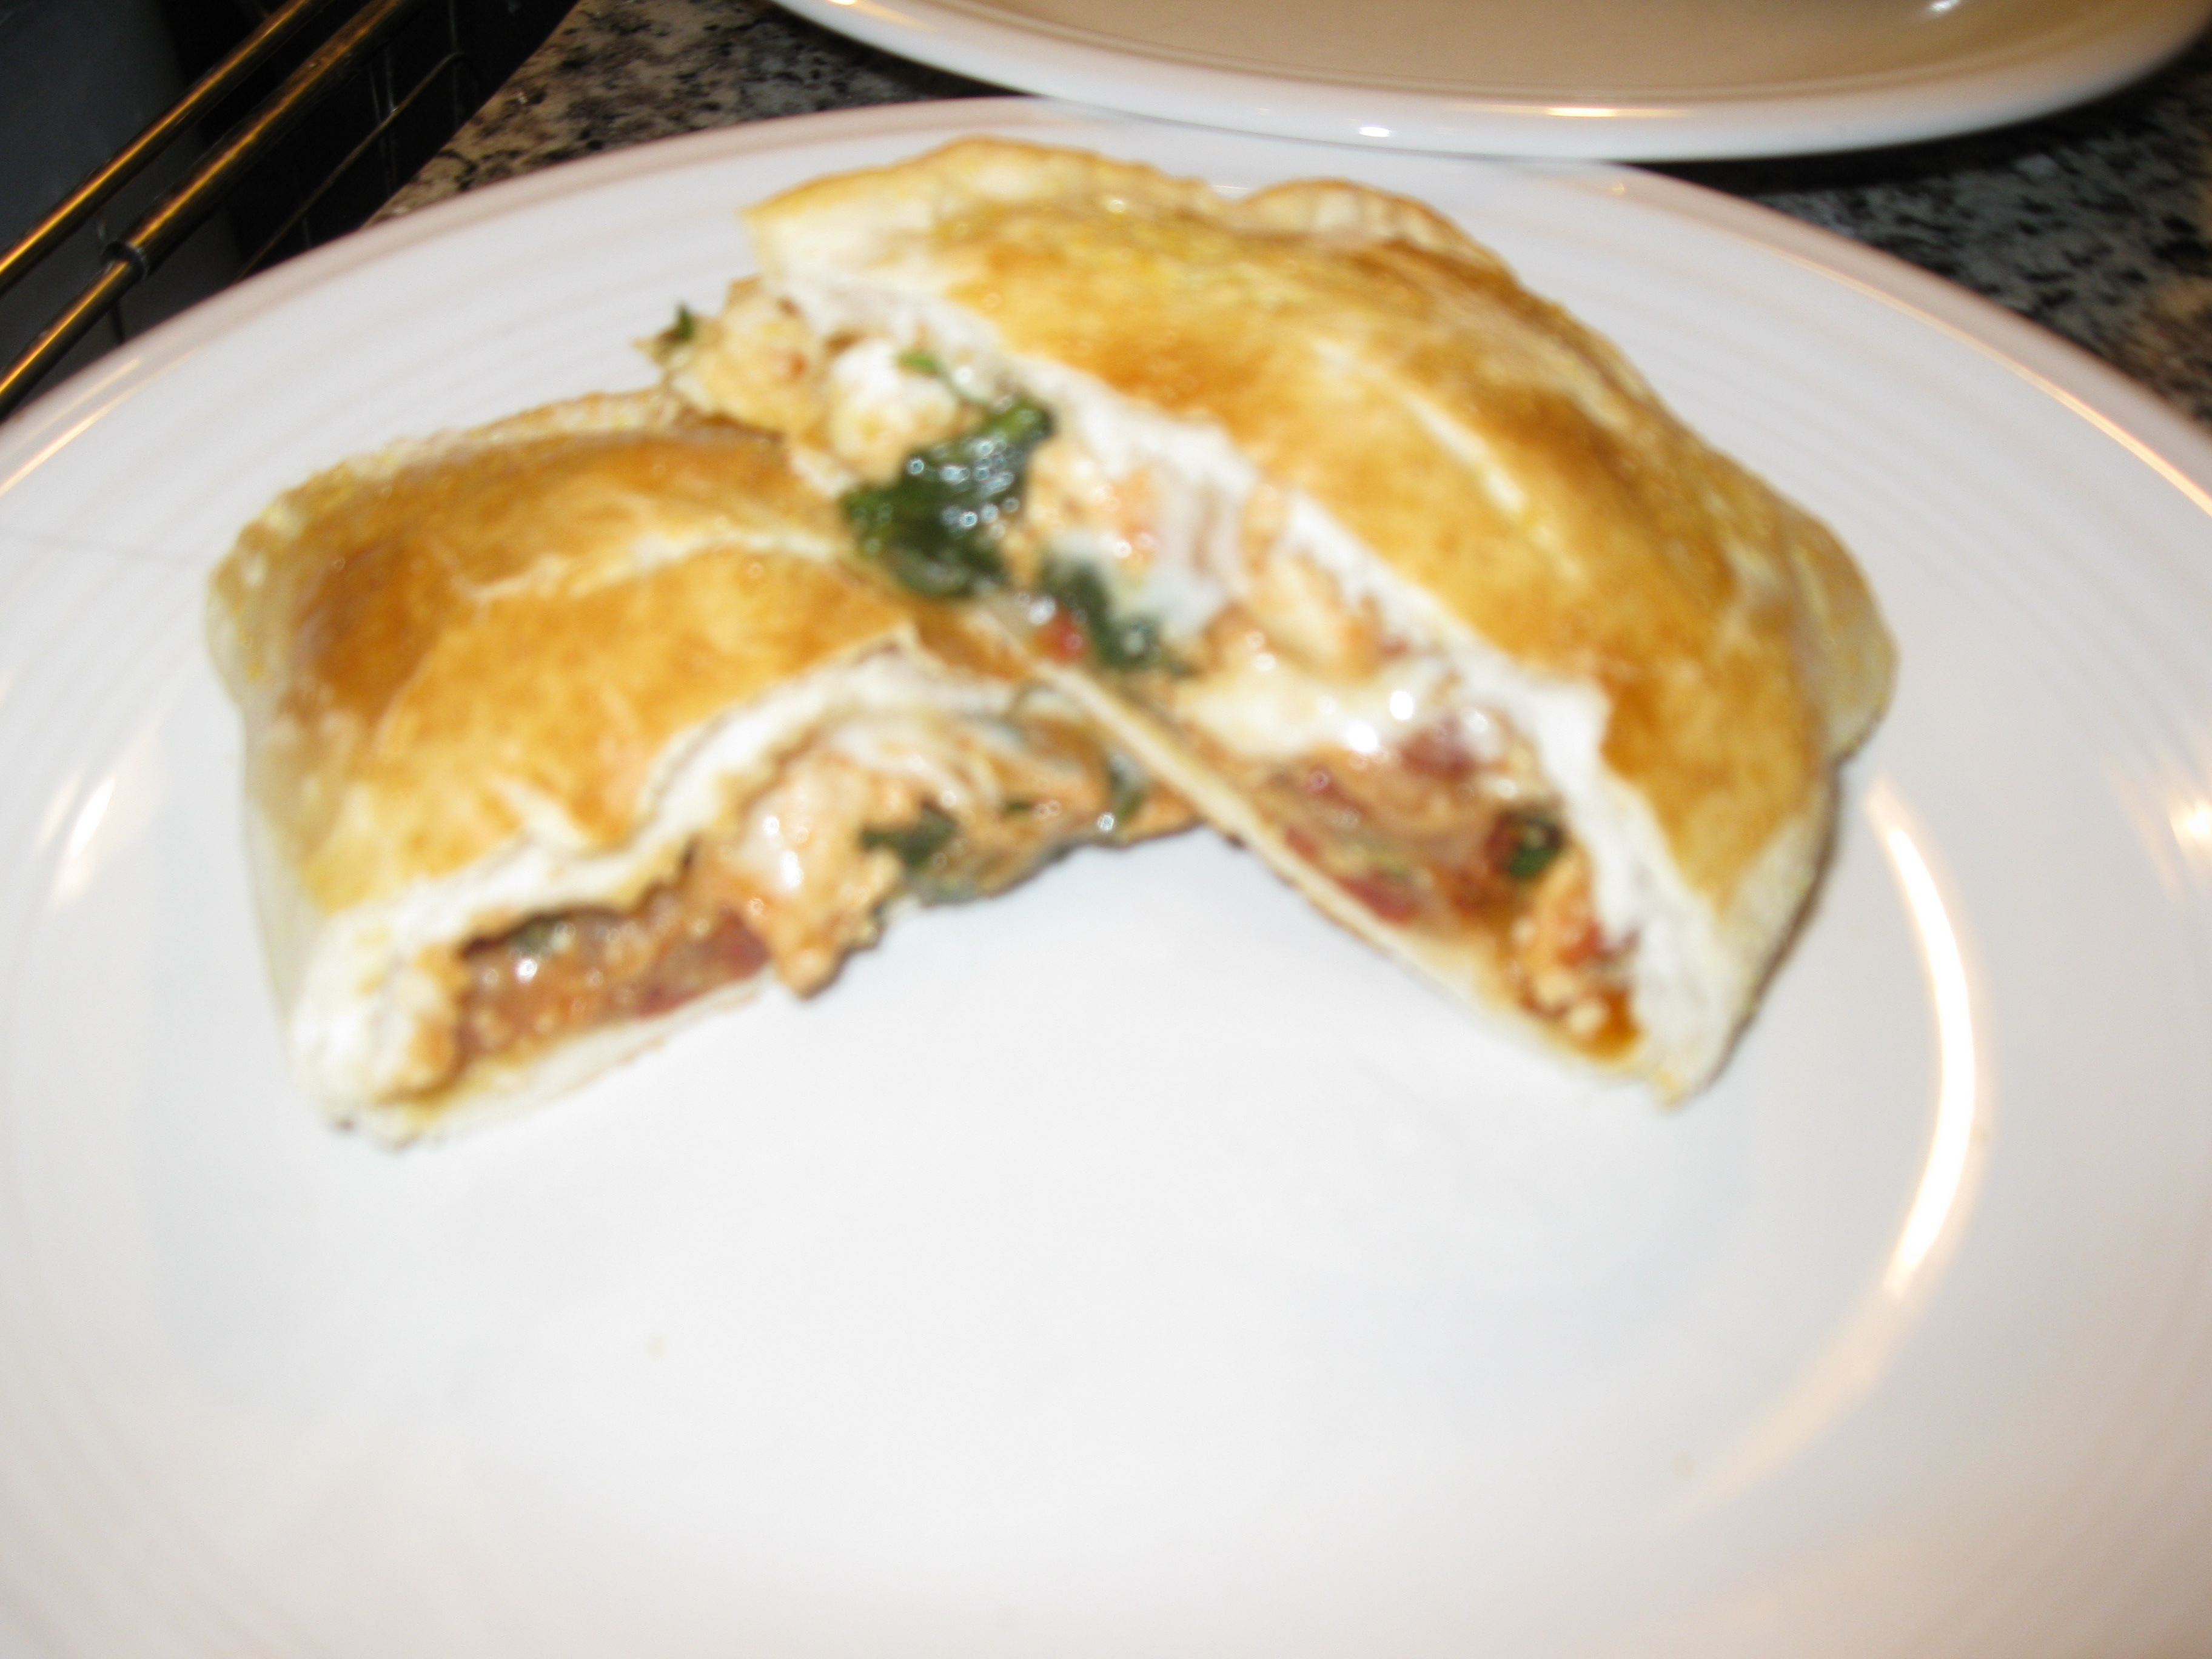 Recipe 10.4: Chicken, Spinach, and Sun-Dried Tomato Calzones